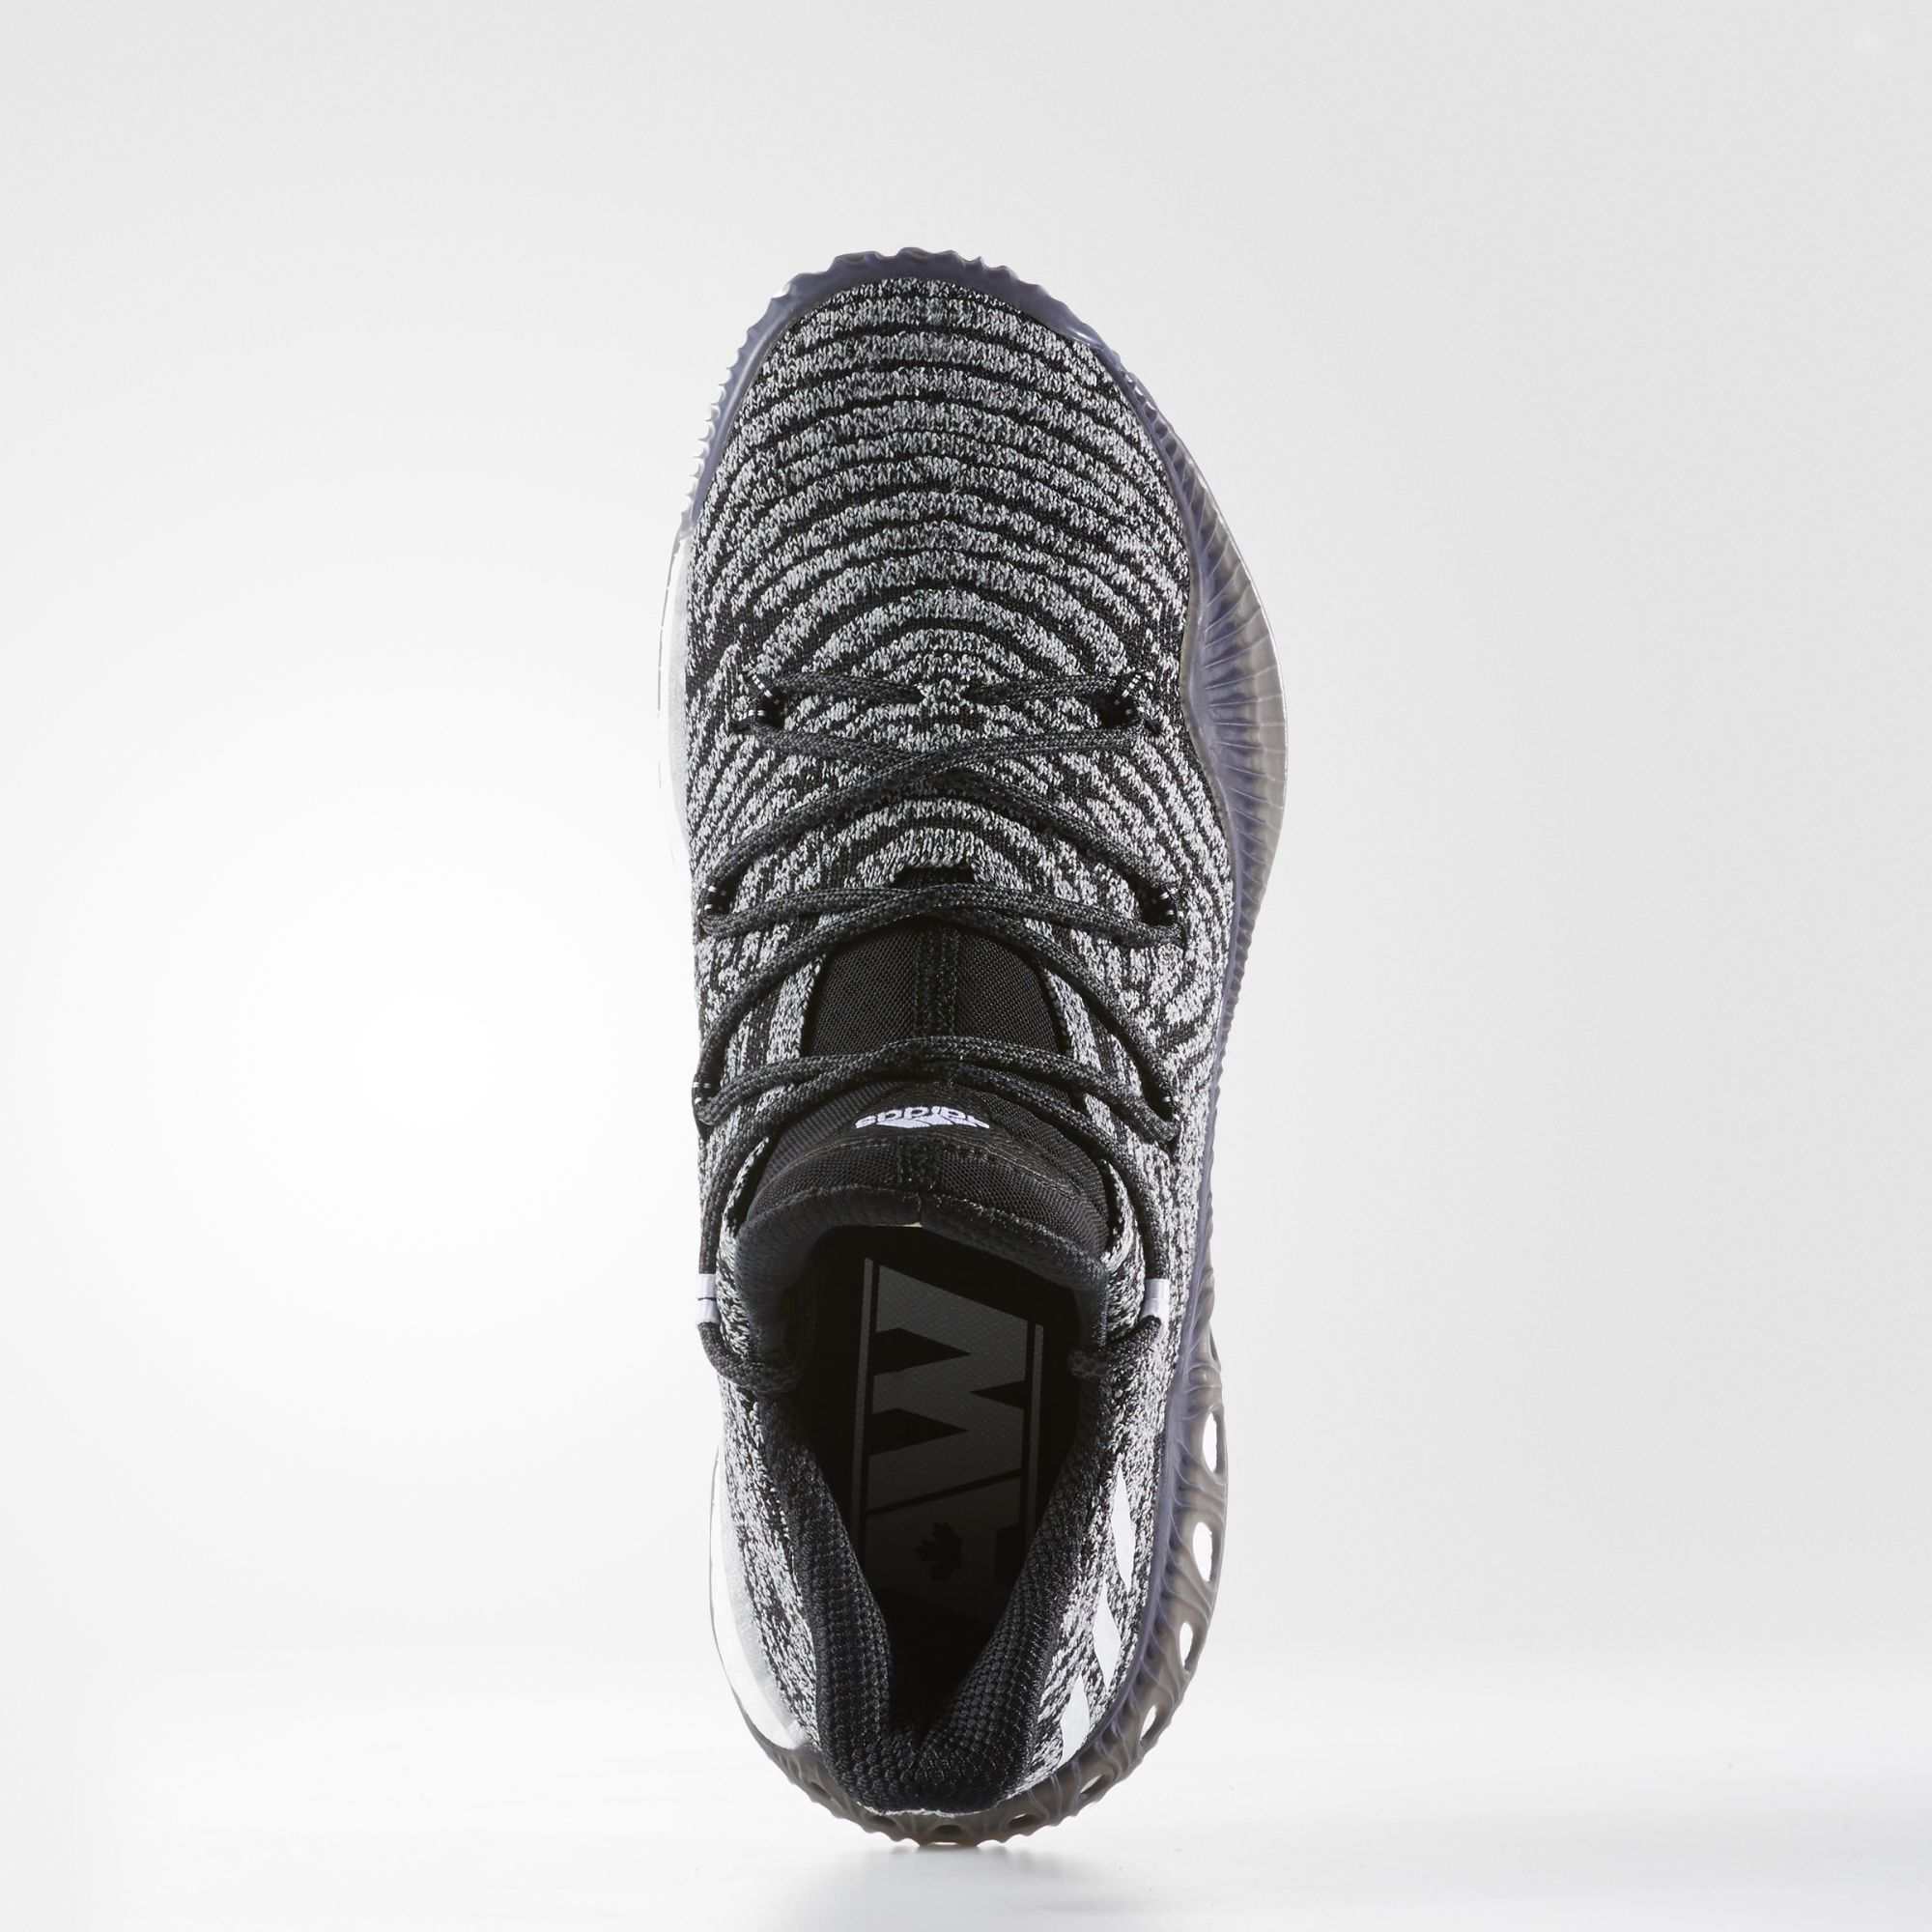 Adidas Crazy 16255 Explosive WearTesters Low AW Top Top WearTesters 0747b3f - colja.host